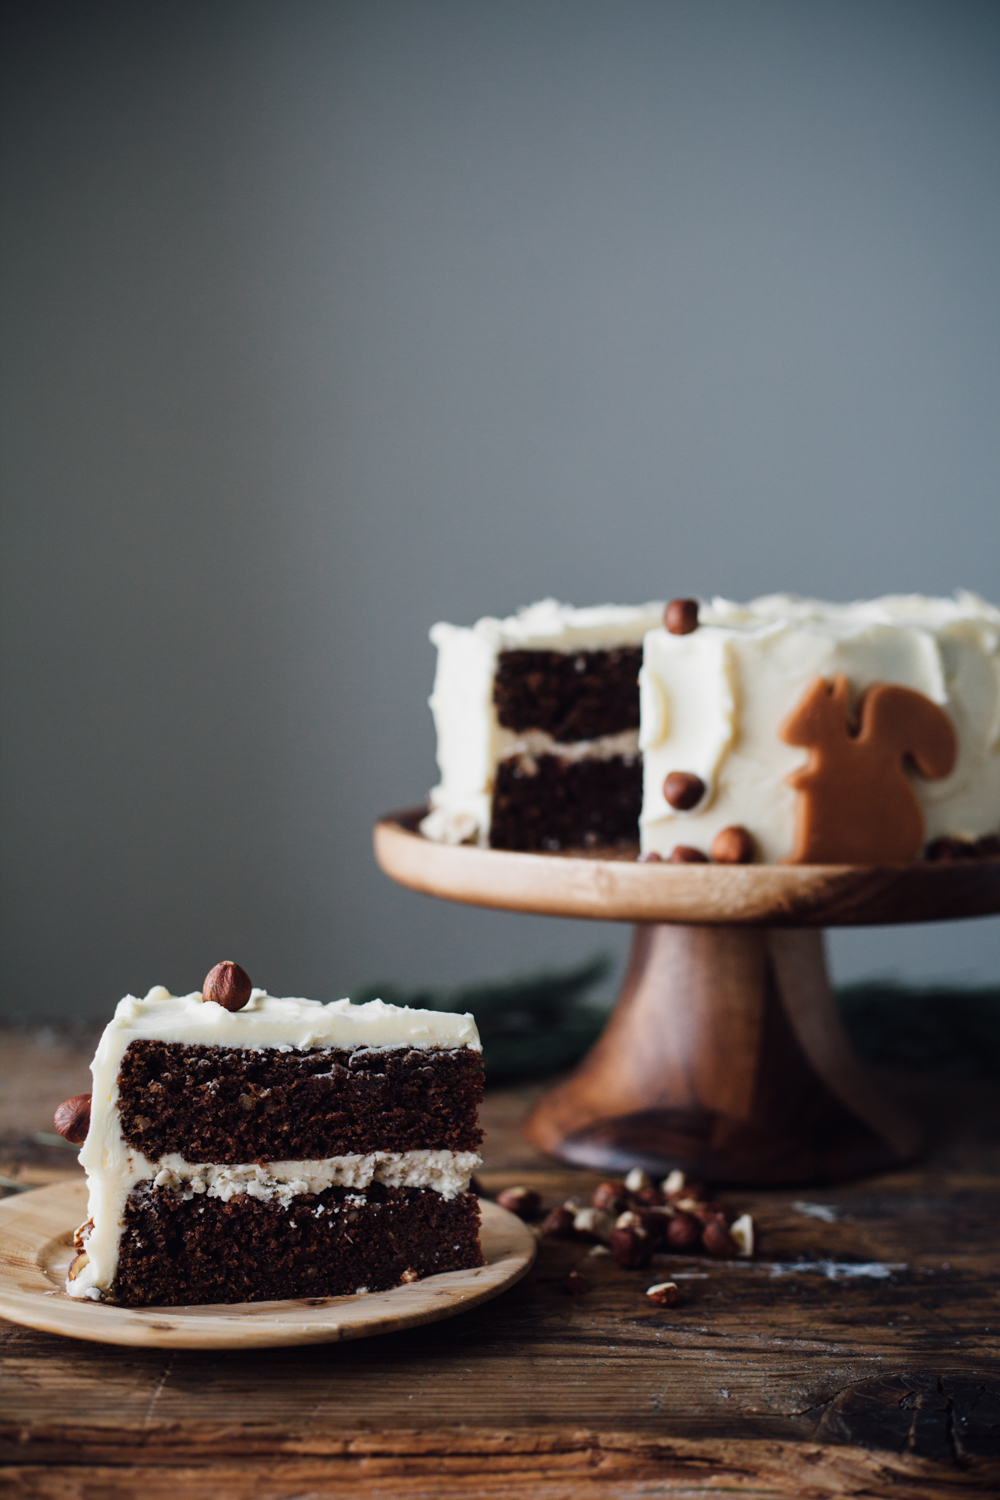 chocolate-hazelnut-cake-23.jpg